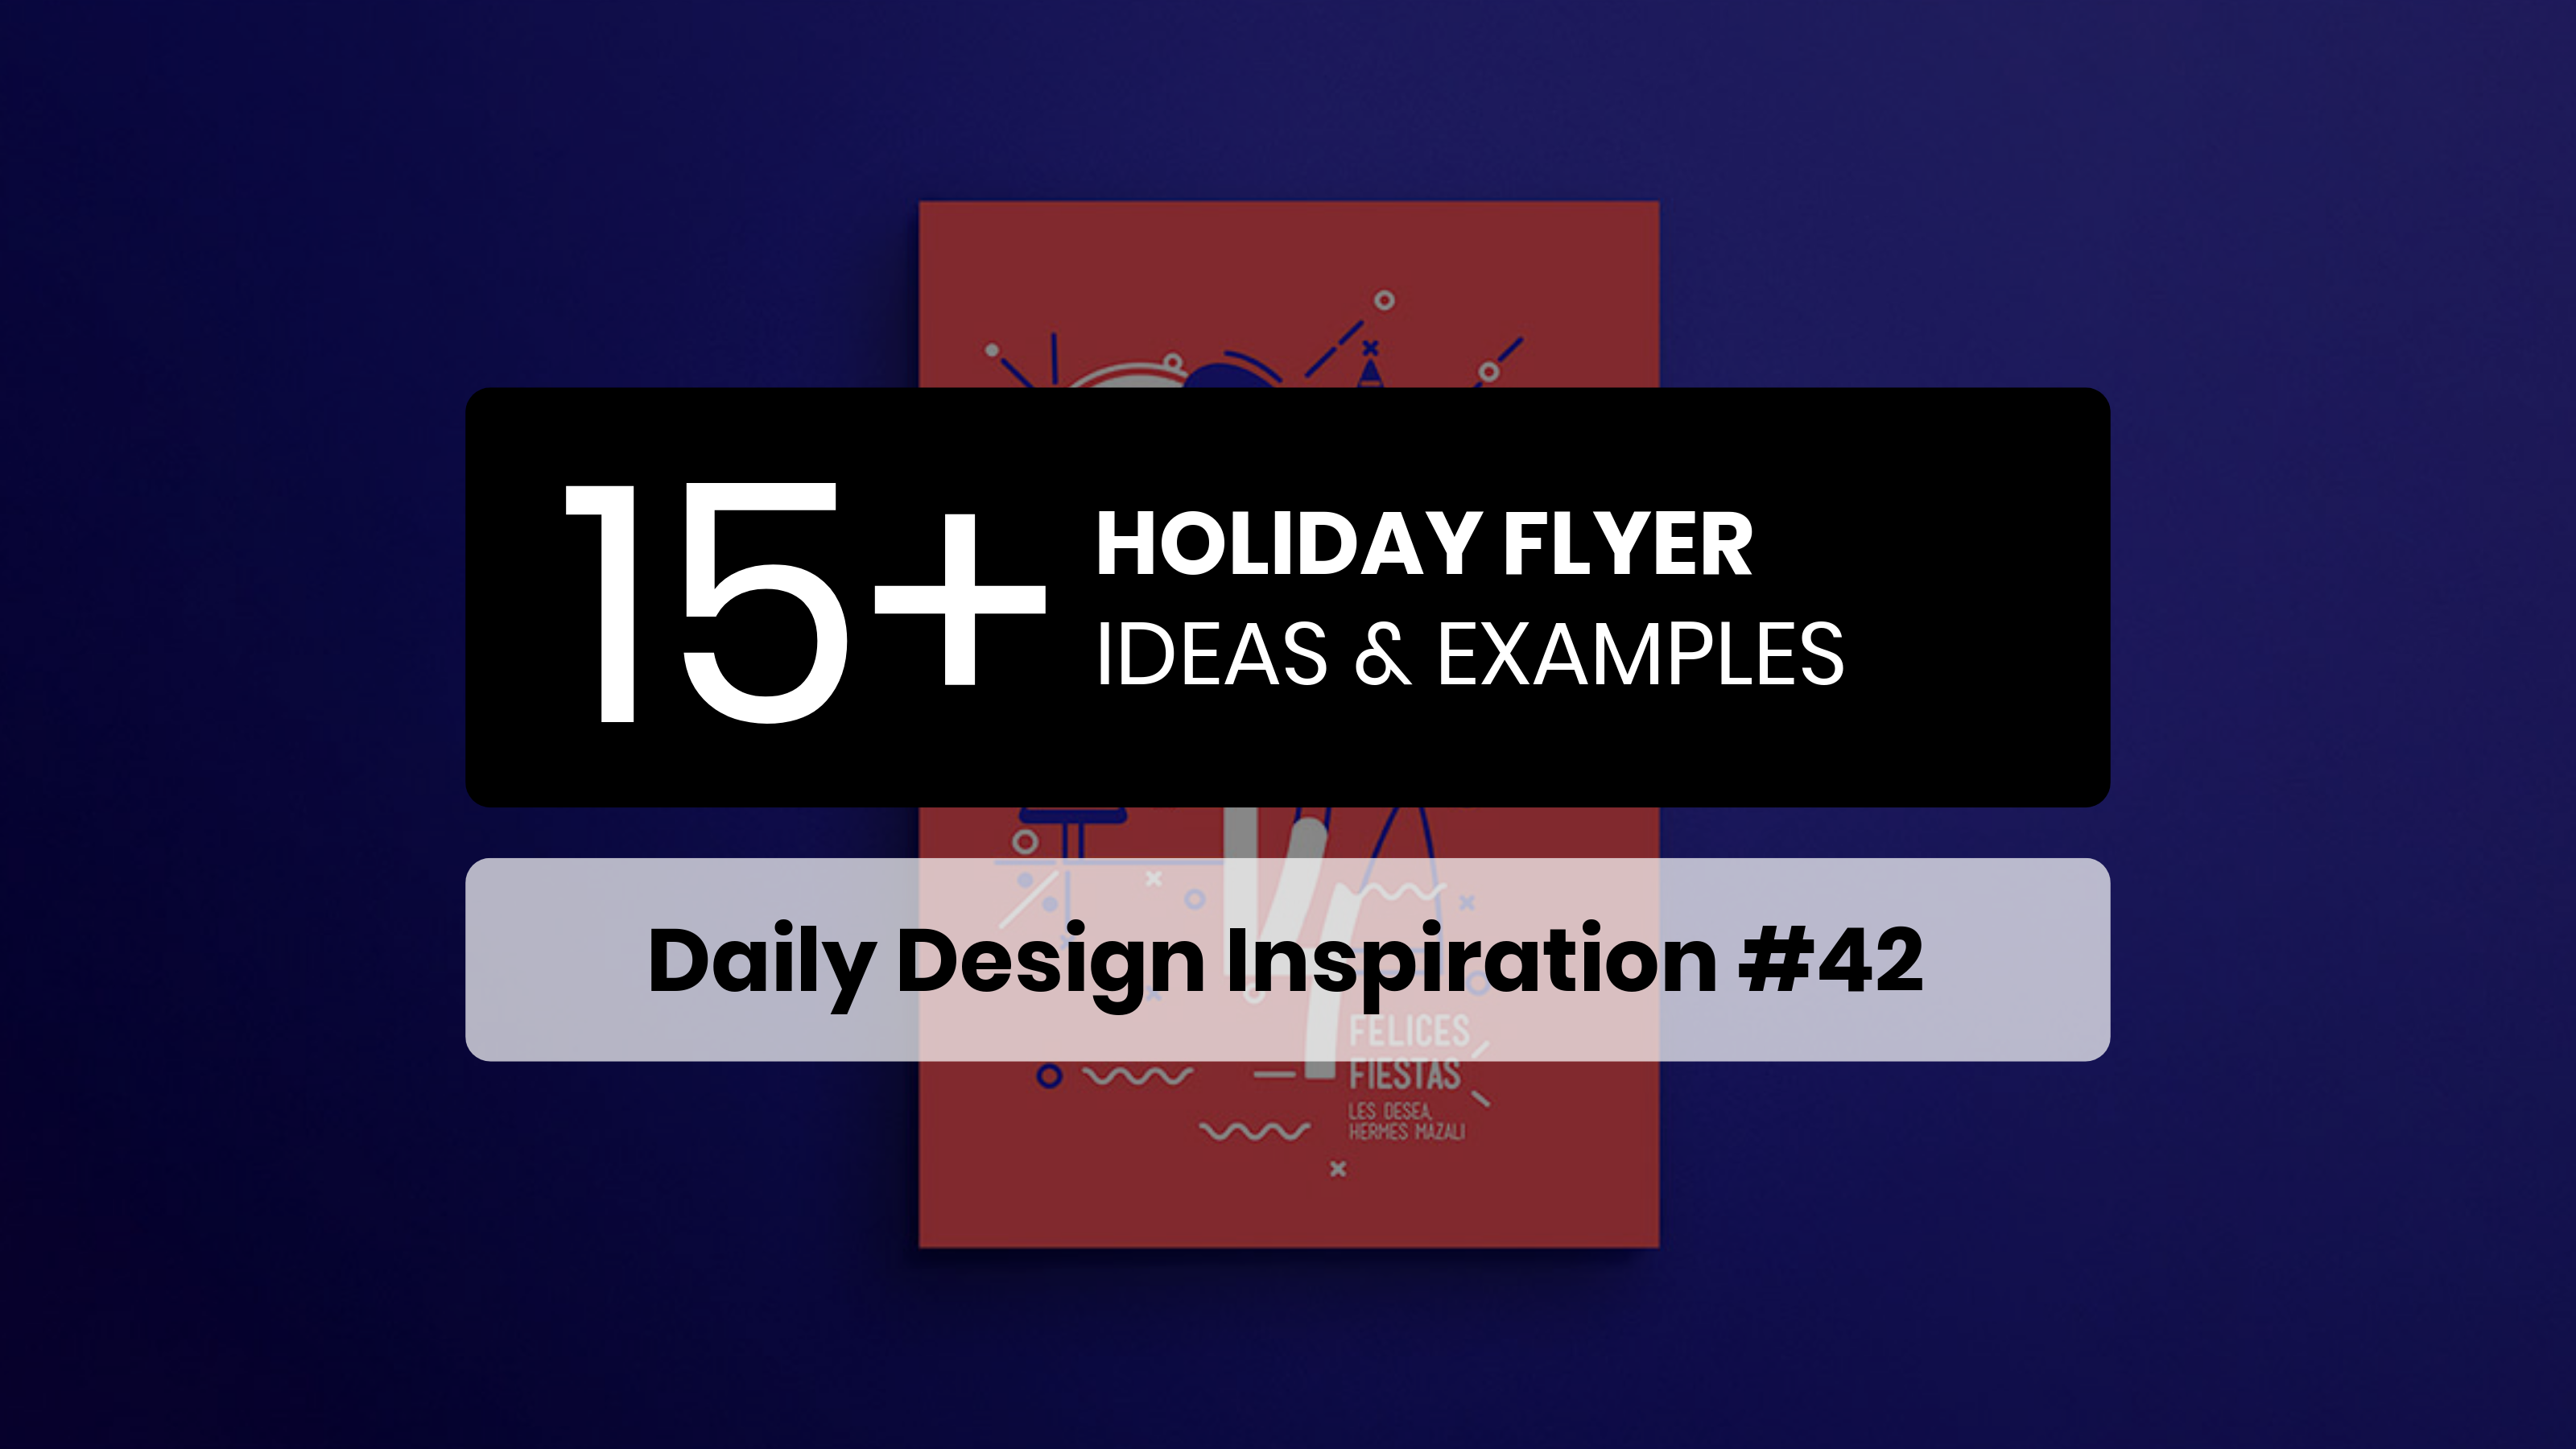 Holiday Flyer Examples